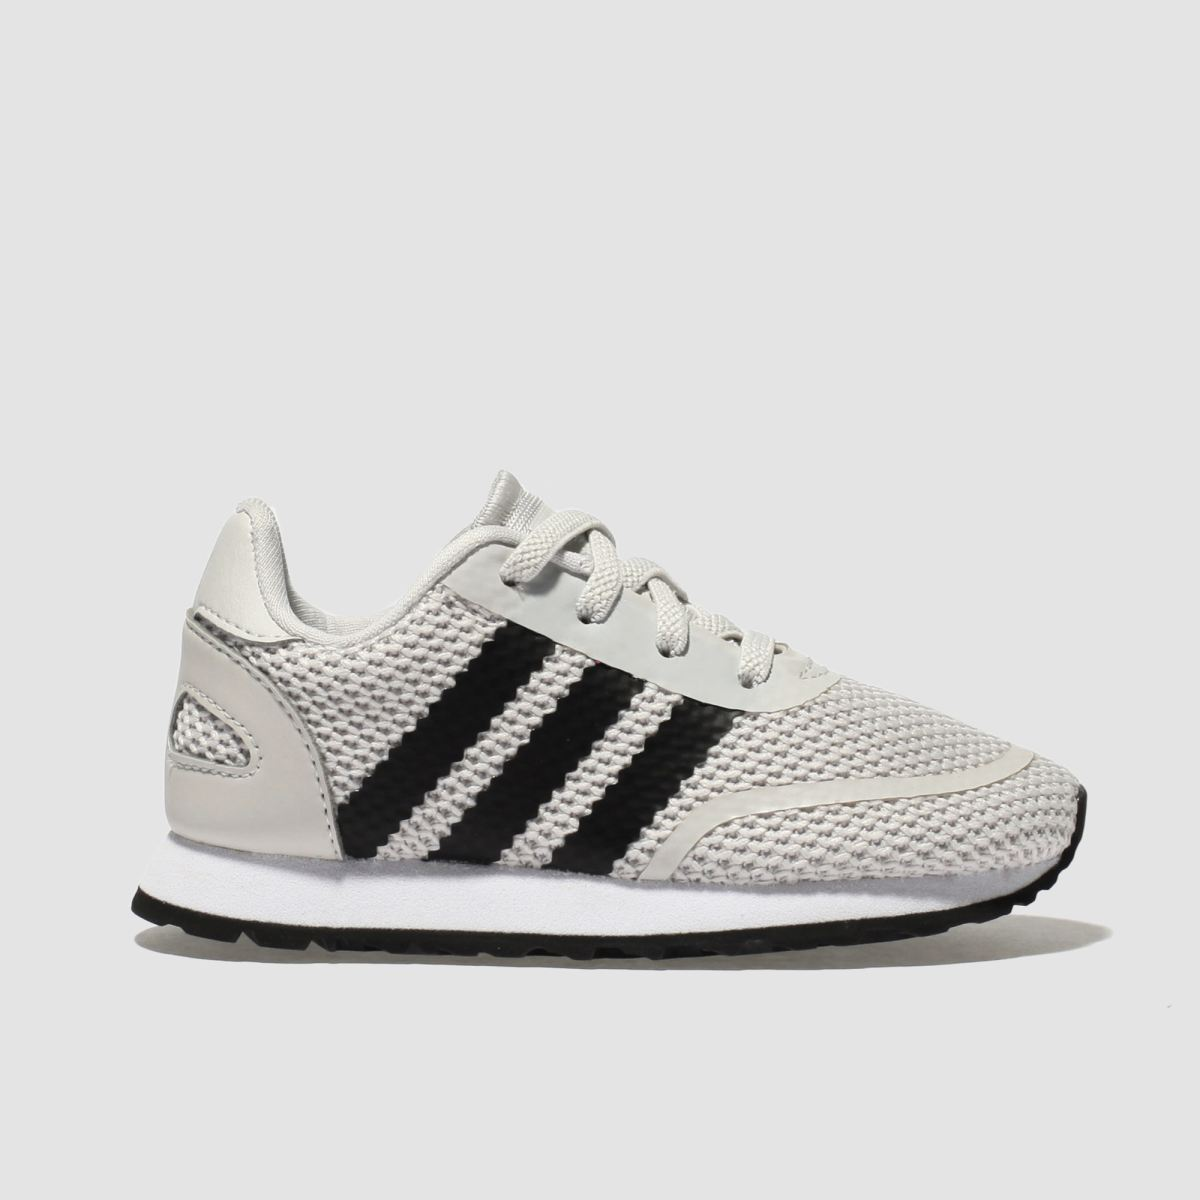 Adidas Light Grey N-5923 El Trainers Toddler